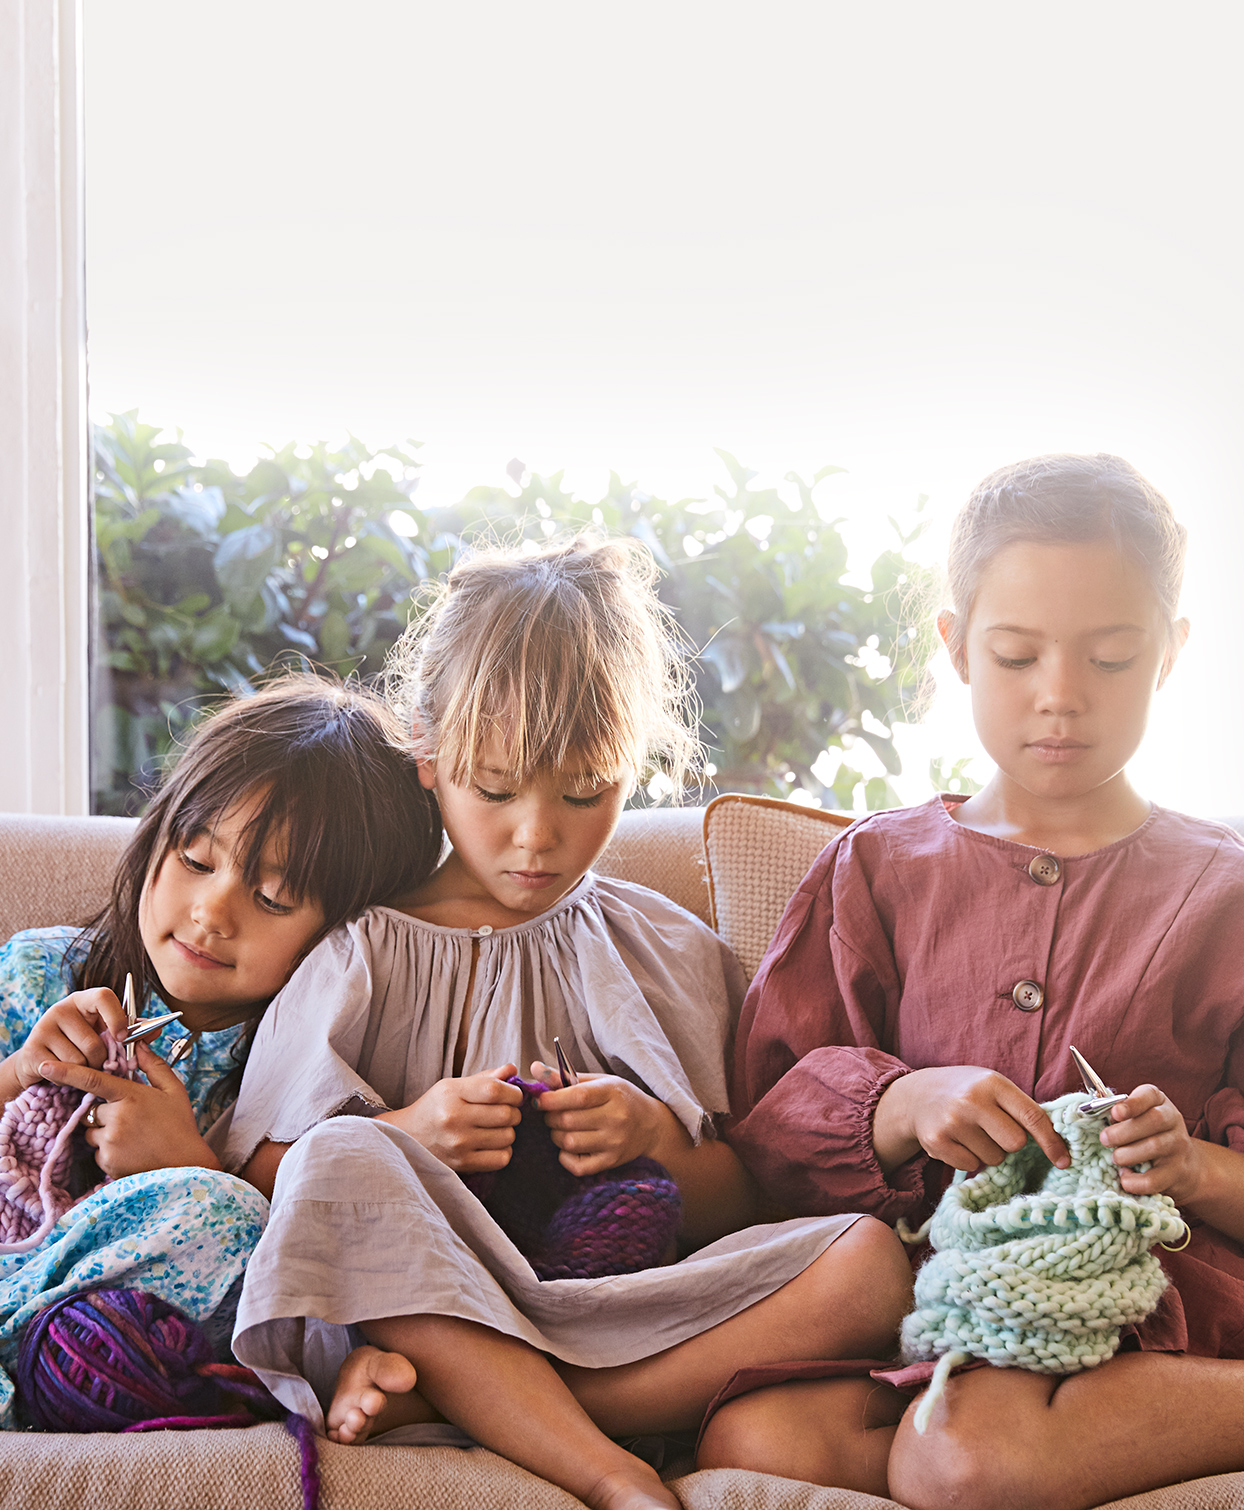 kids working on knitting project